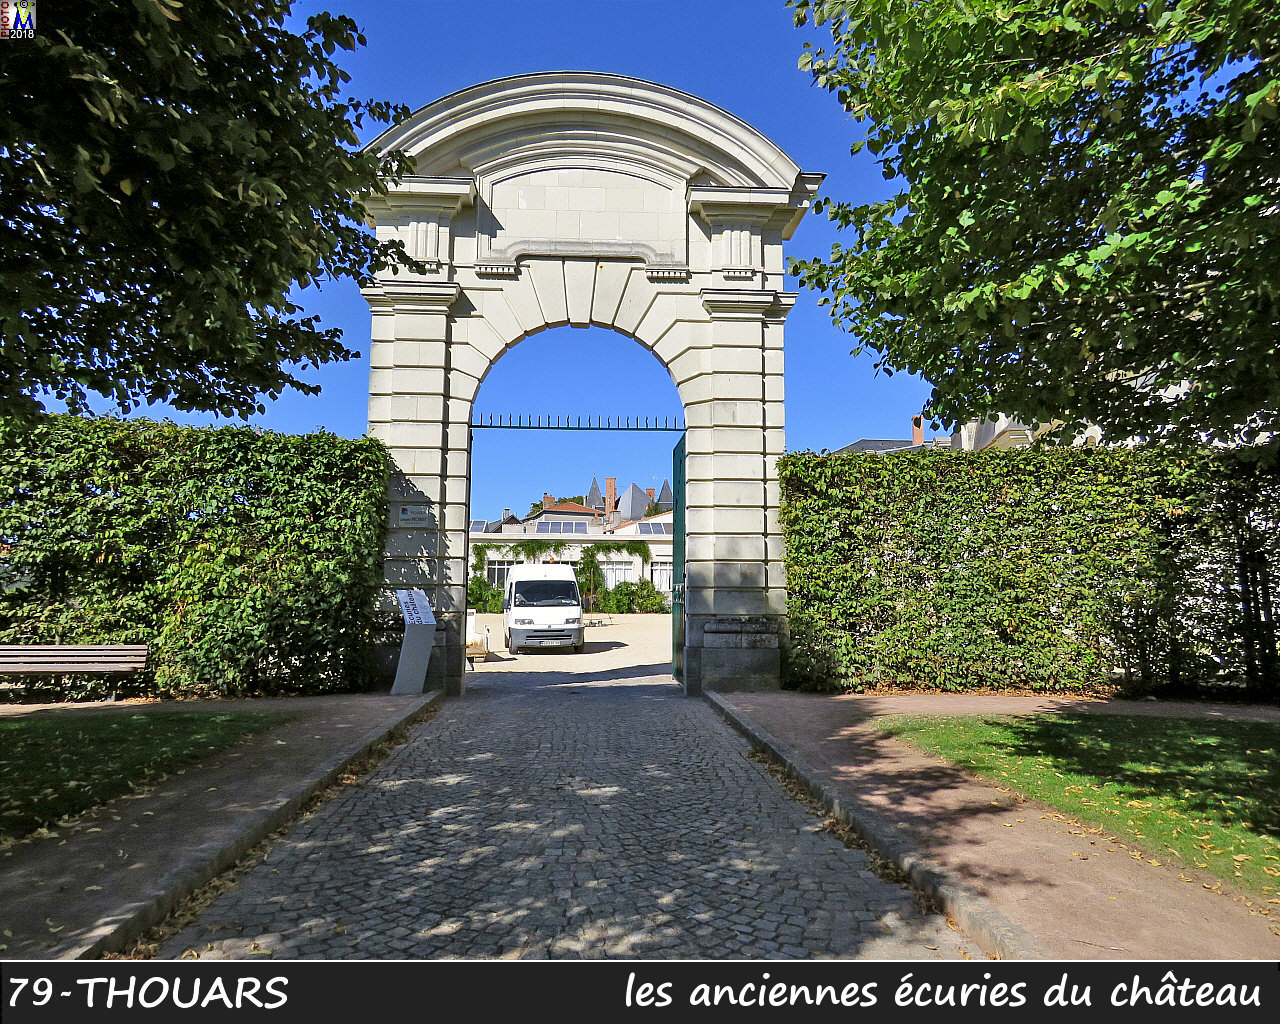 79THOUARS_chateau_1400.jpg